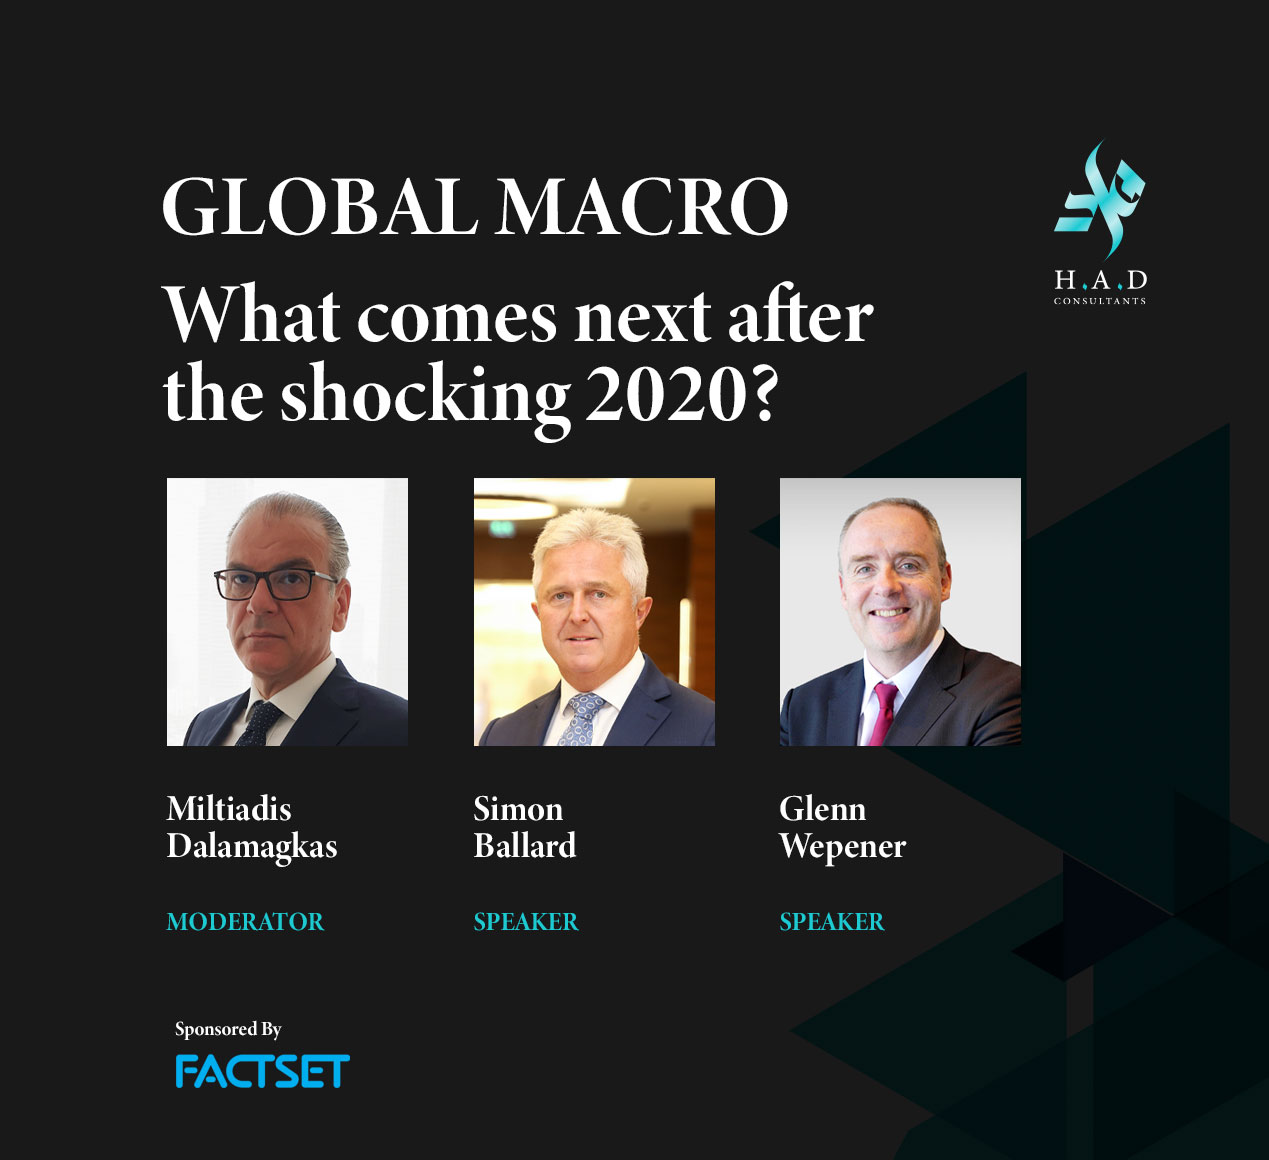 Global Macro: What comes next after the shocking 2020?